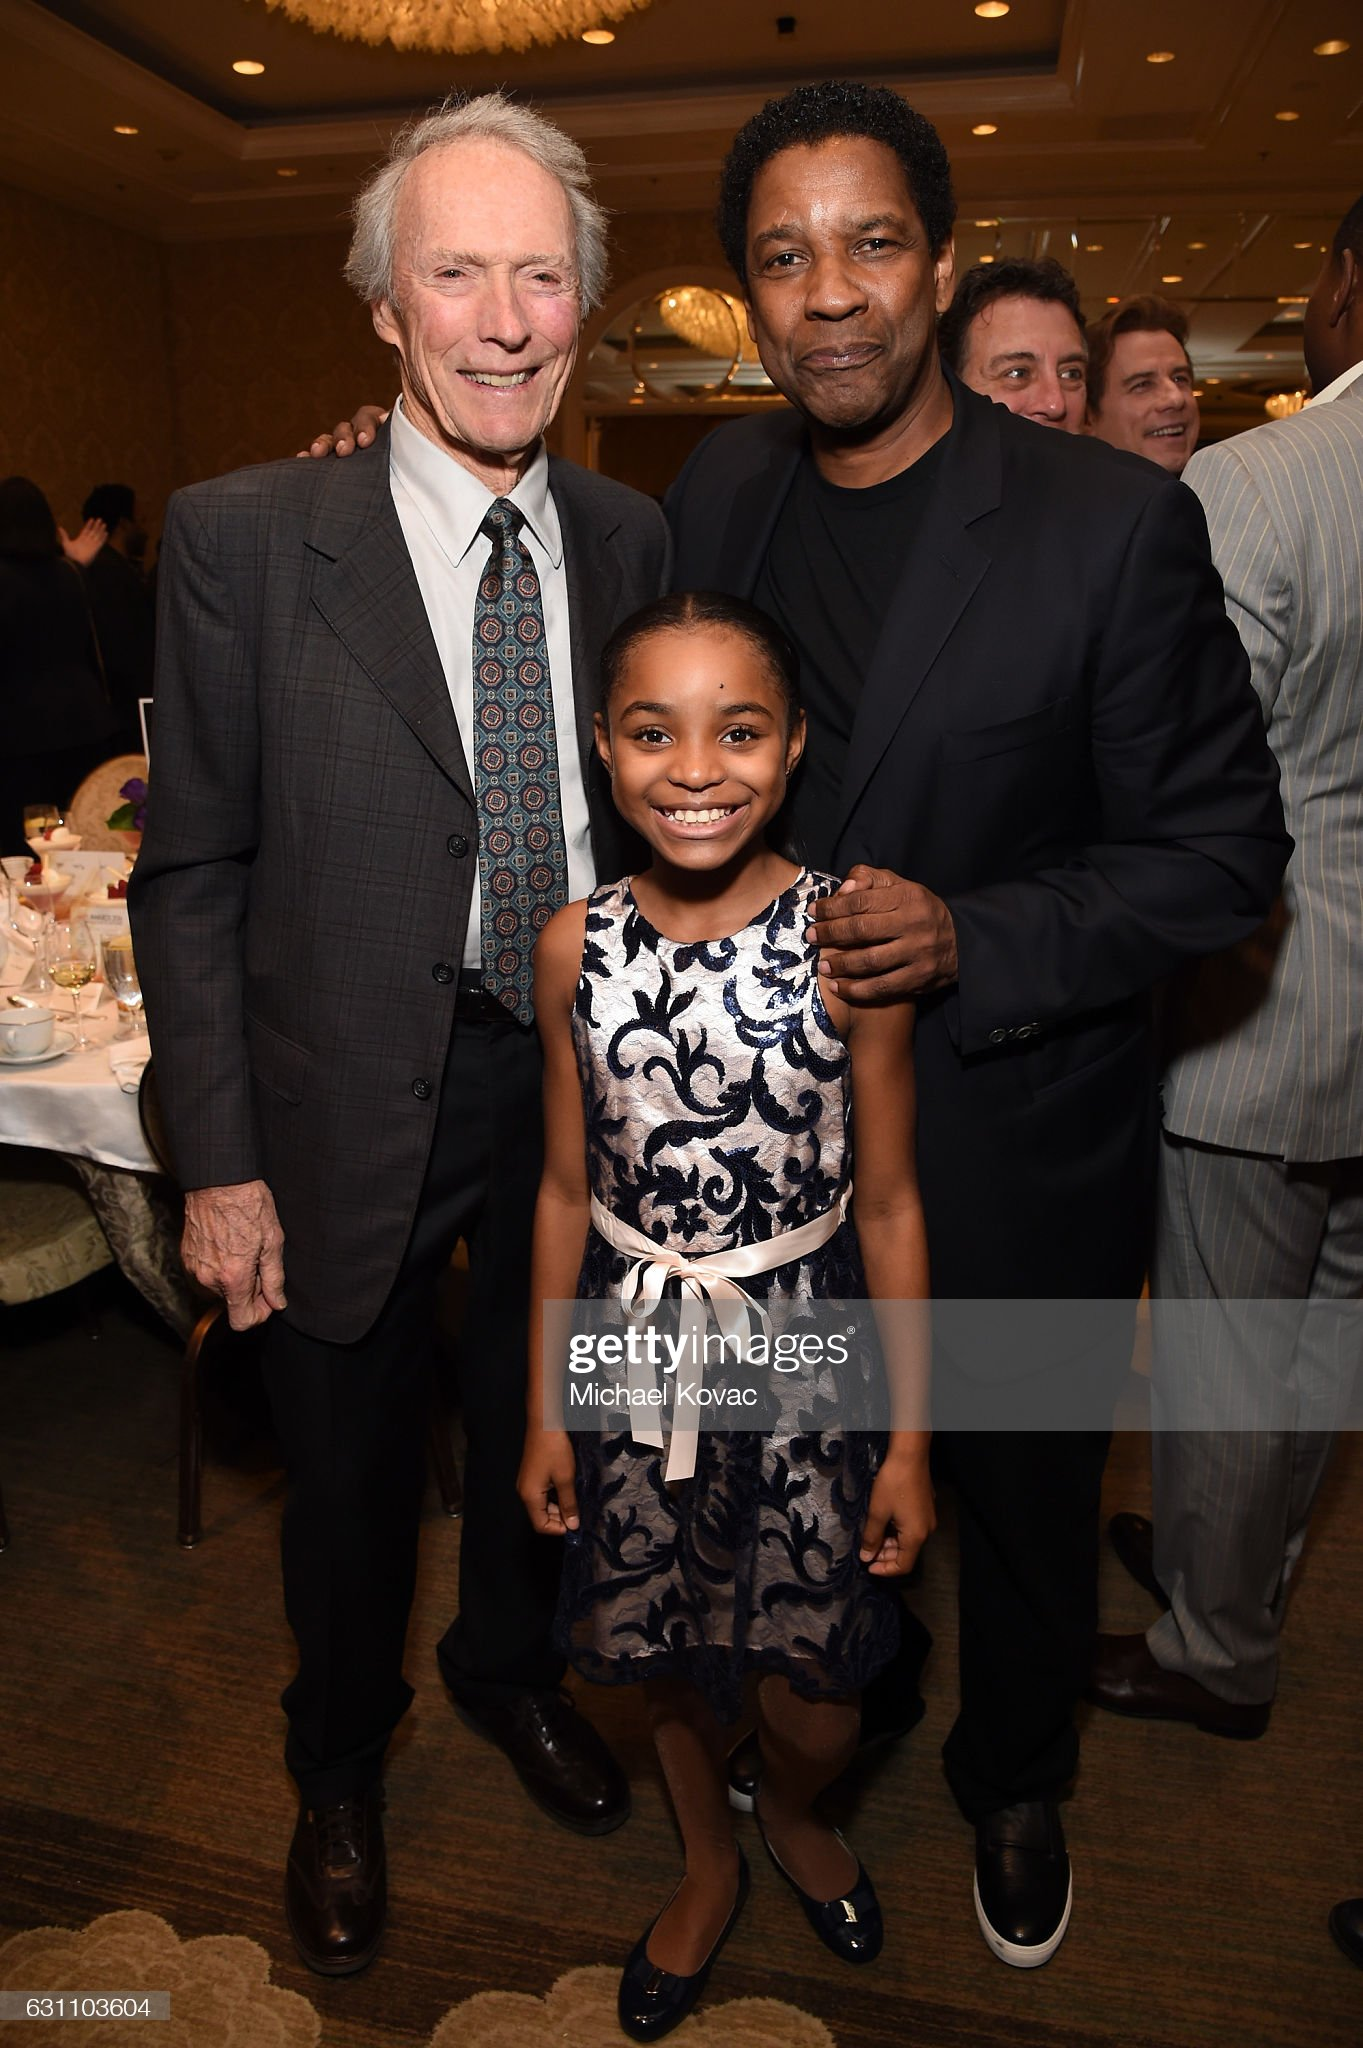 ¿Cuánto mide Denzel Washington? - Altura - Real height Actordirector-clint-eastwood-actress-saniyya-sidney-and-actordirector-picture-id631103604?s=2048x2048